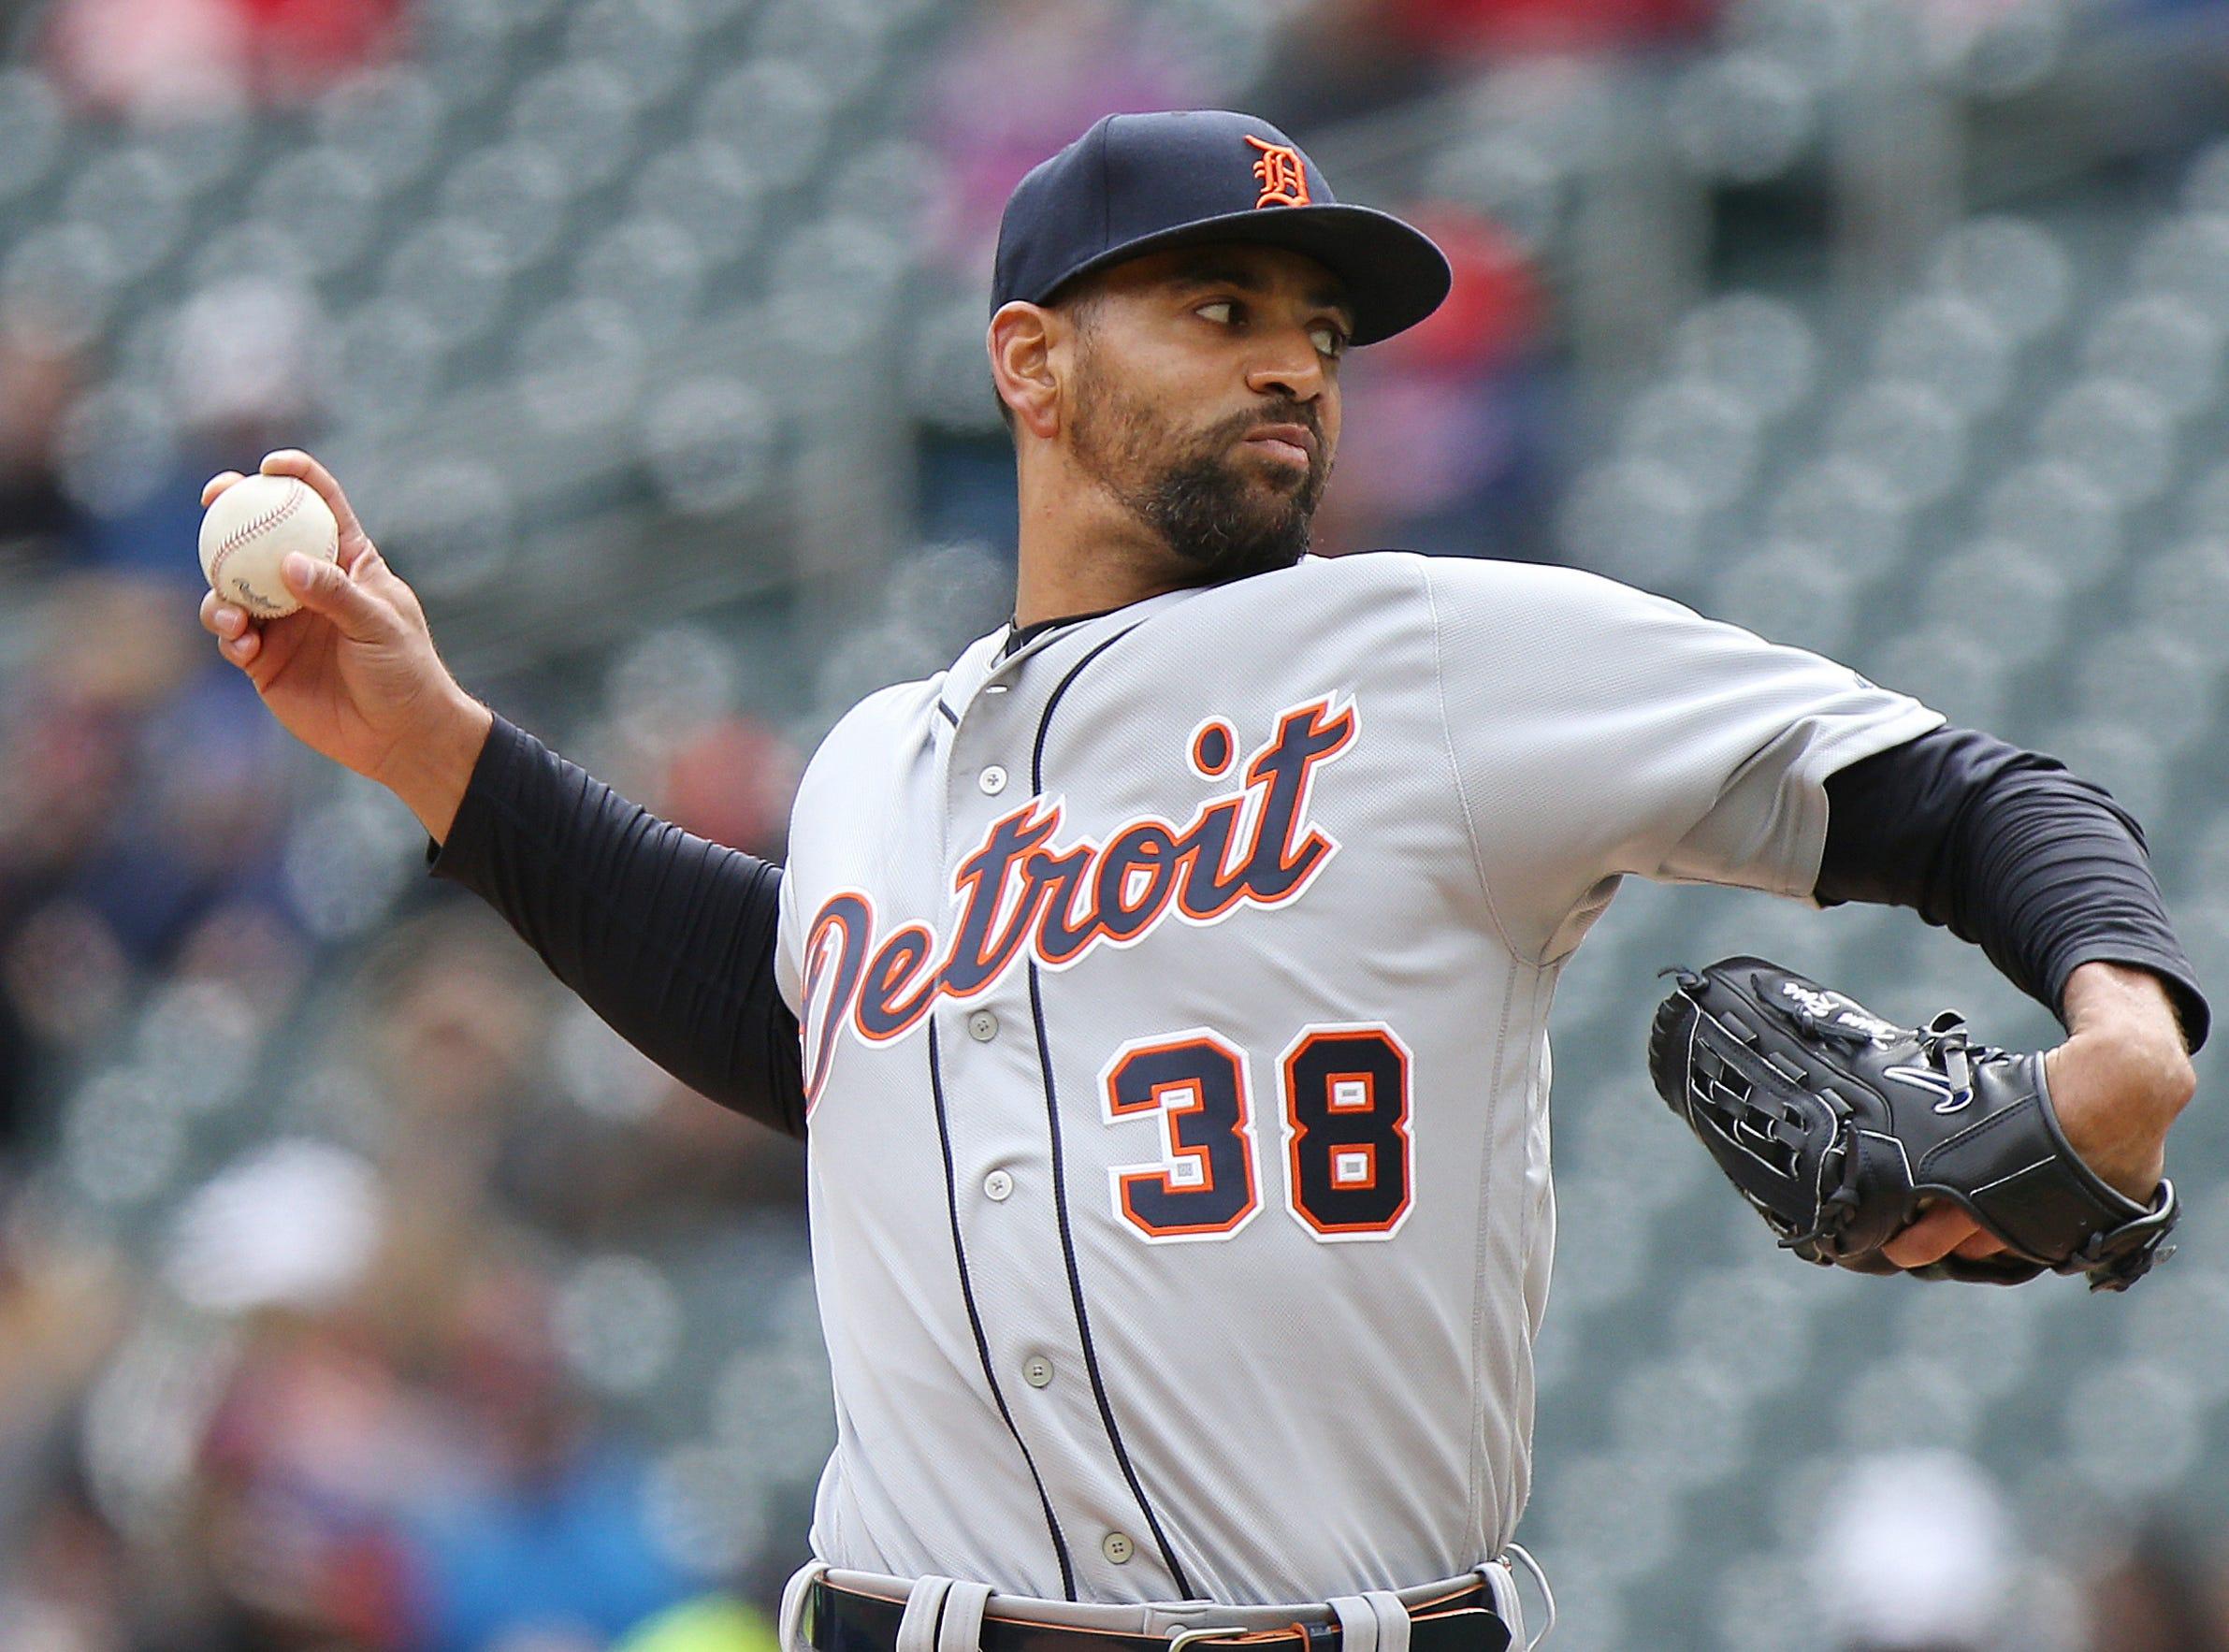 Detroit Tigers pitcher Tyson Ross throws in the first inning of a baseball game against the Minnesota Twins, Saturday, April 13, 2019 in Minneapolis. (AP Photo/Stacy Bengs)